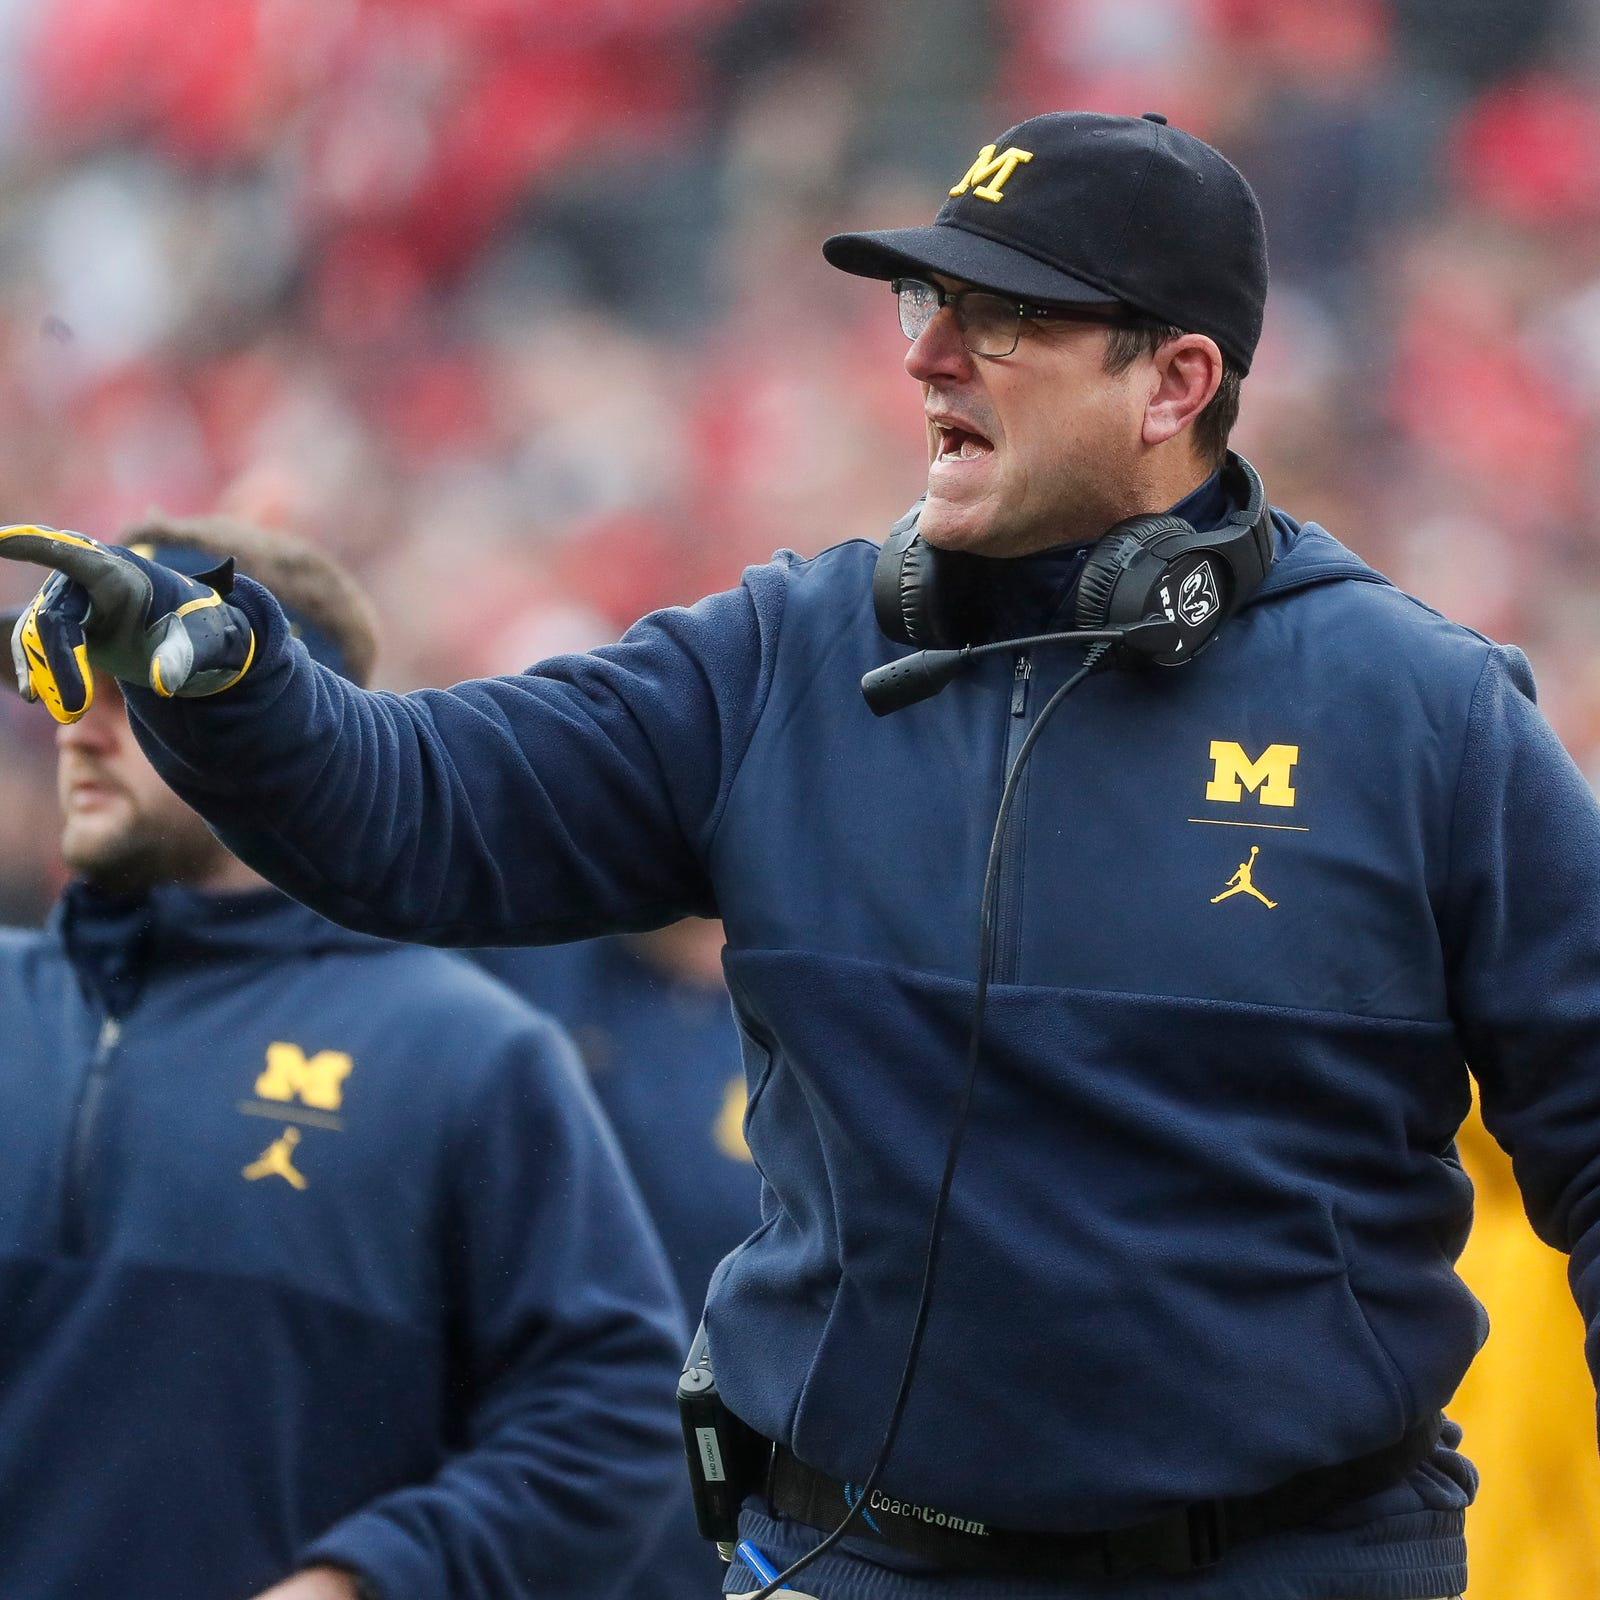 Michigan football faces real pressure and Jim Harbaugh is fired up for it